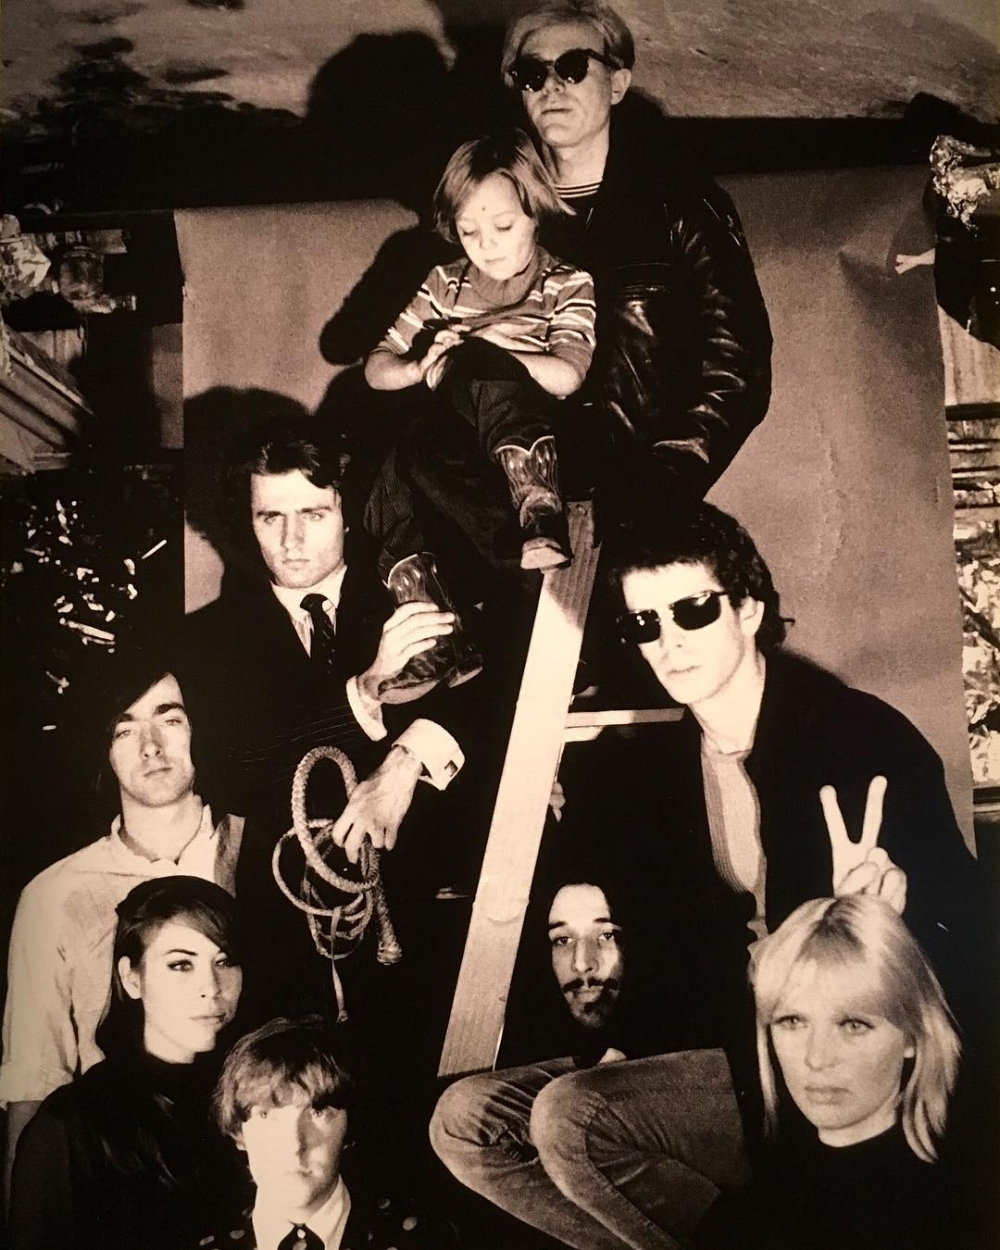 Velvet Underground, Andy Warhol, and members of the Factory family.